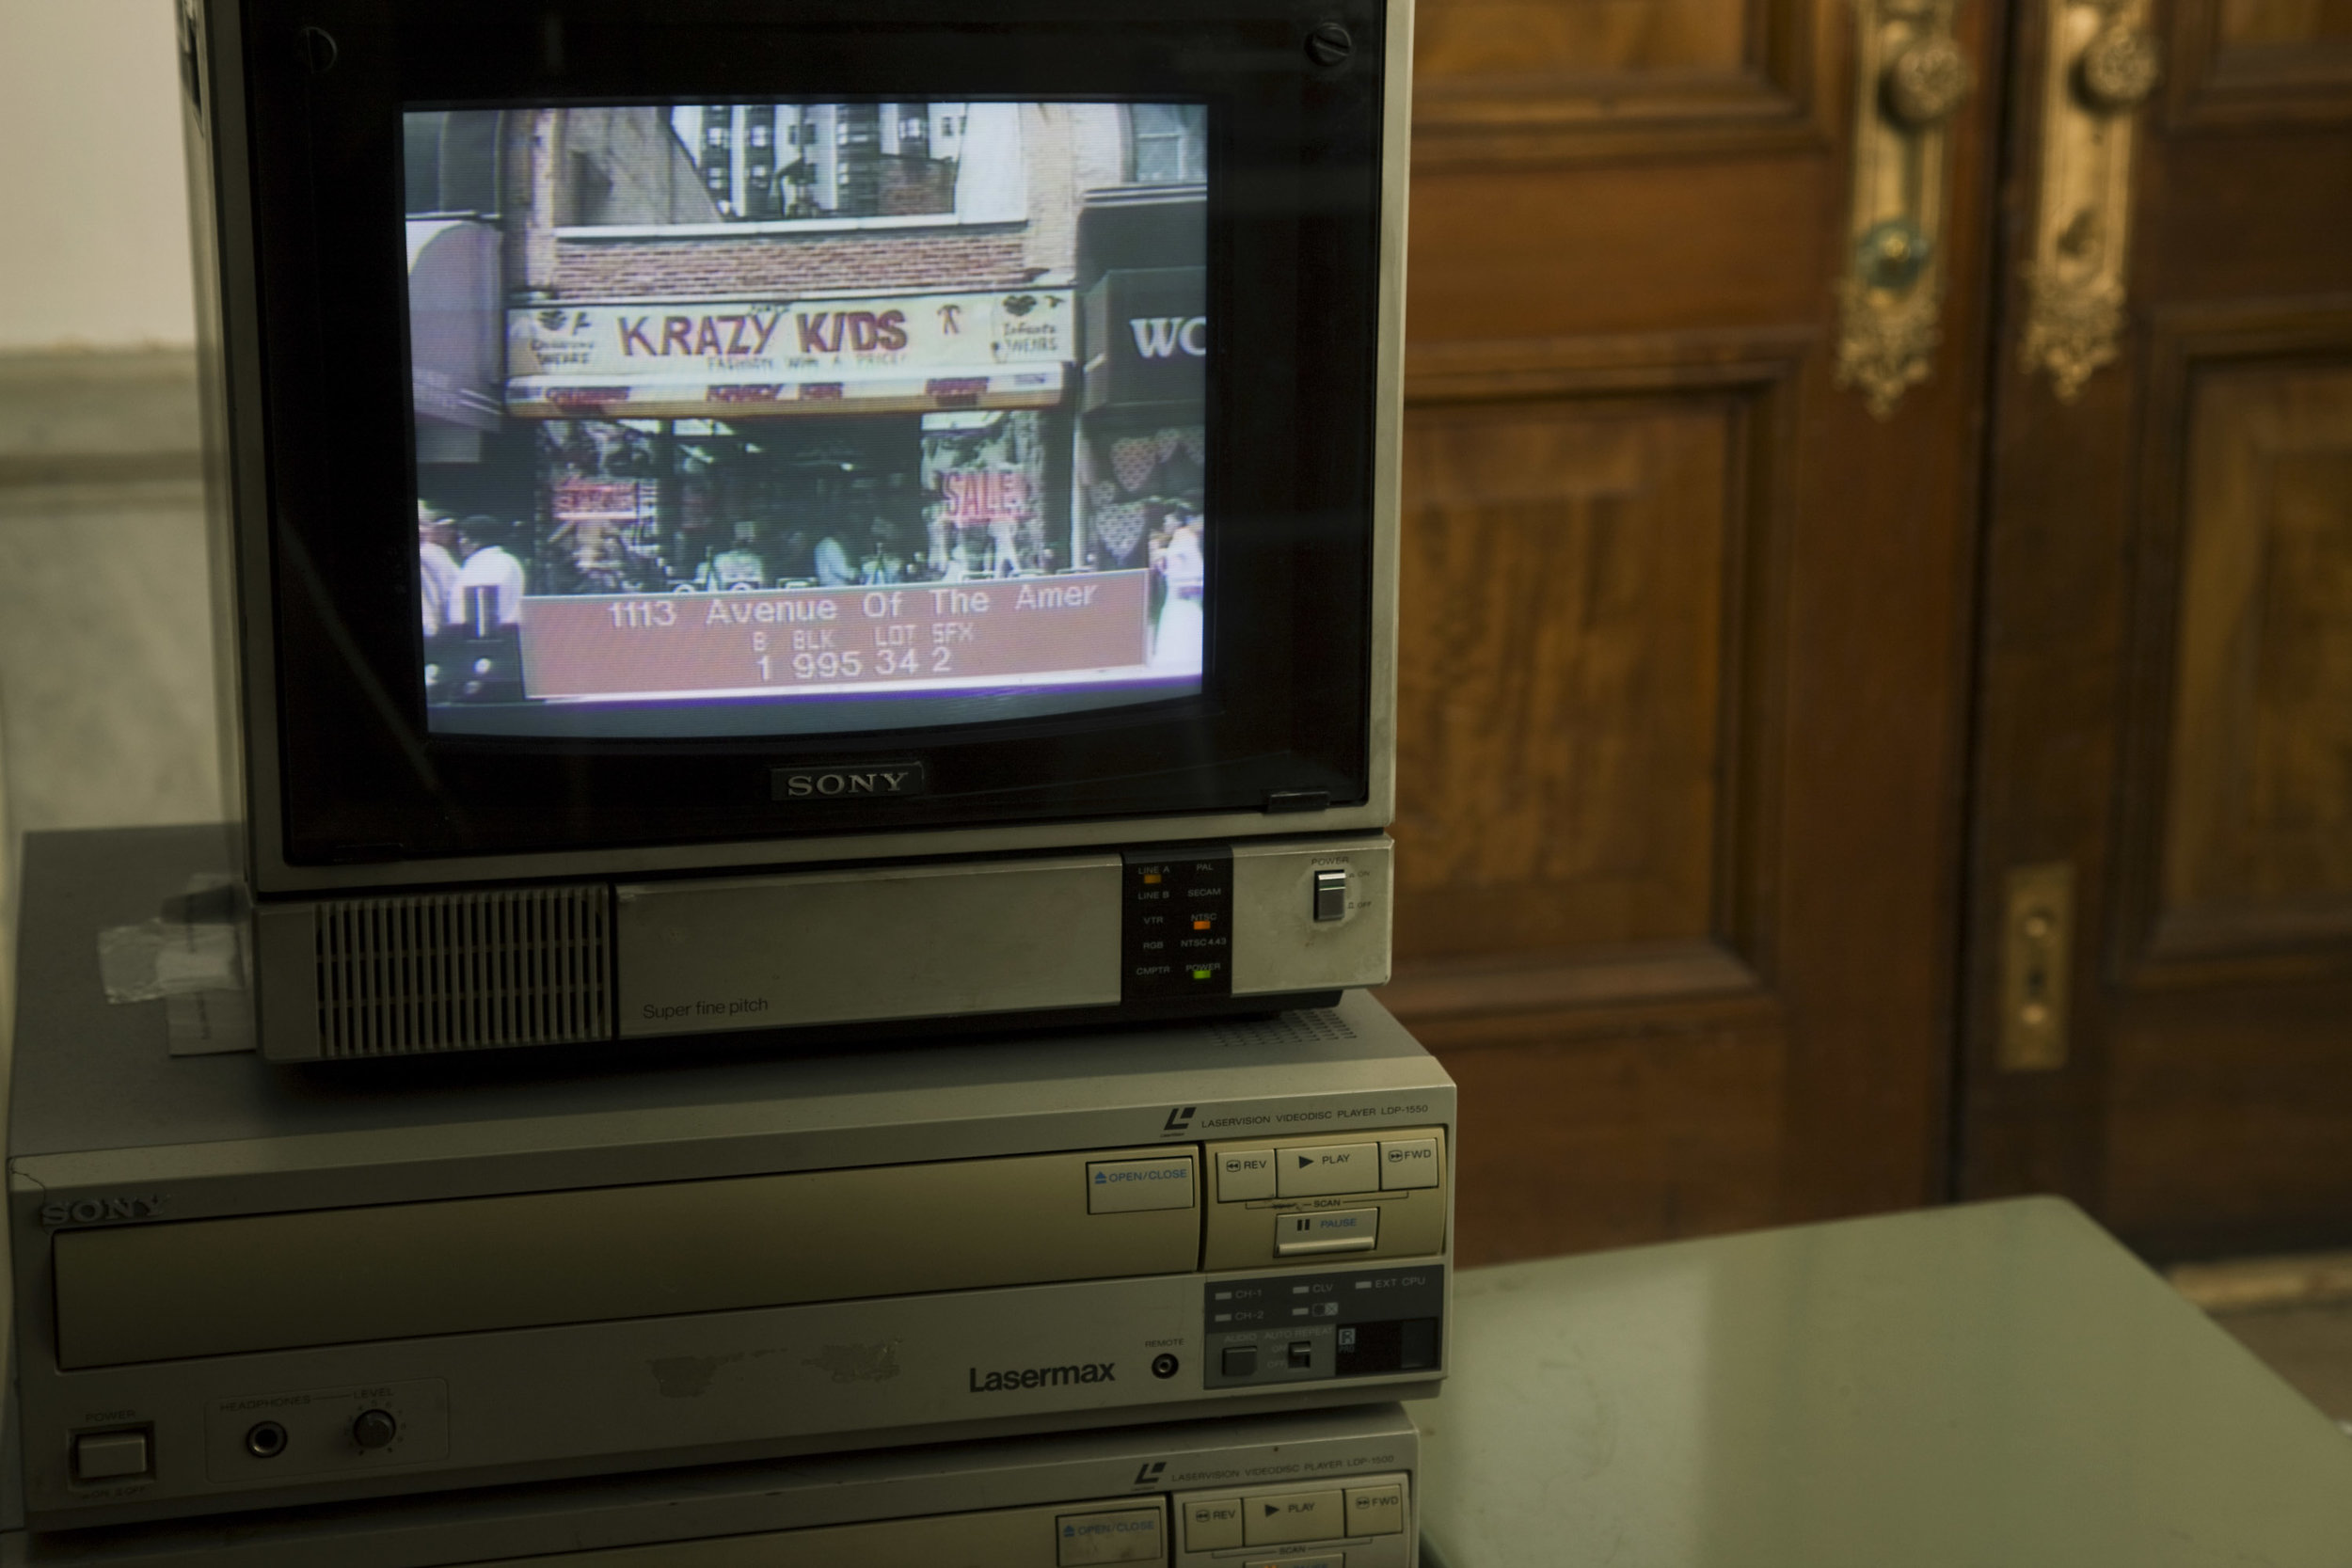 The LVD player during screen capture of the 1980s Tax Photos at the Municipal Archives.